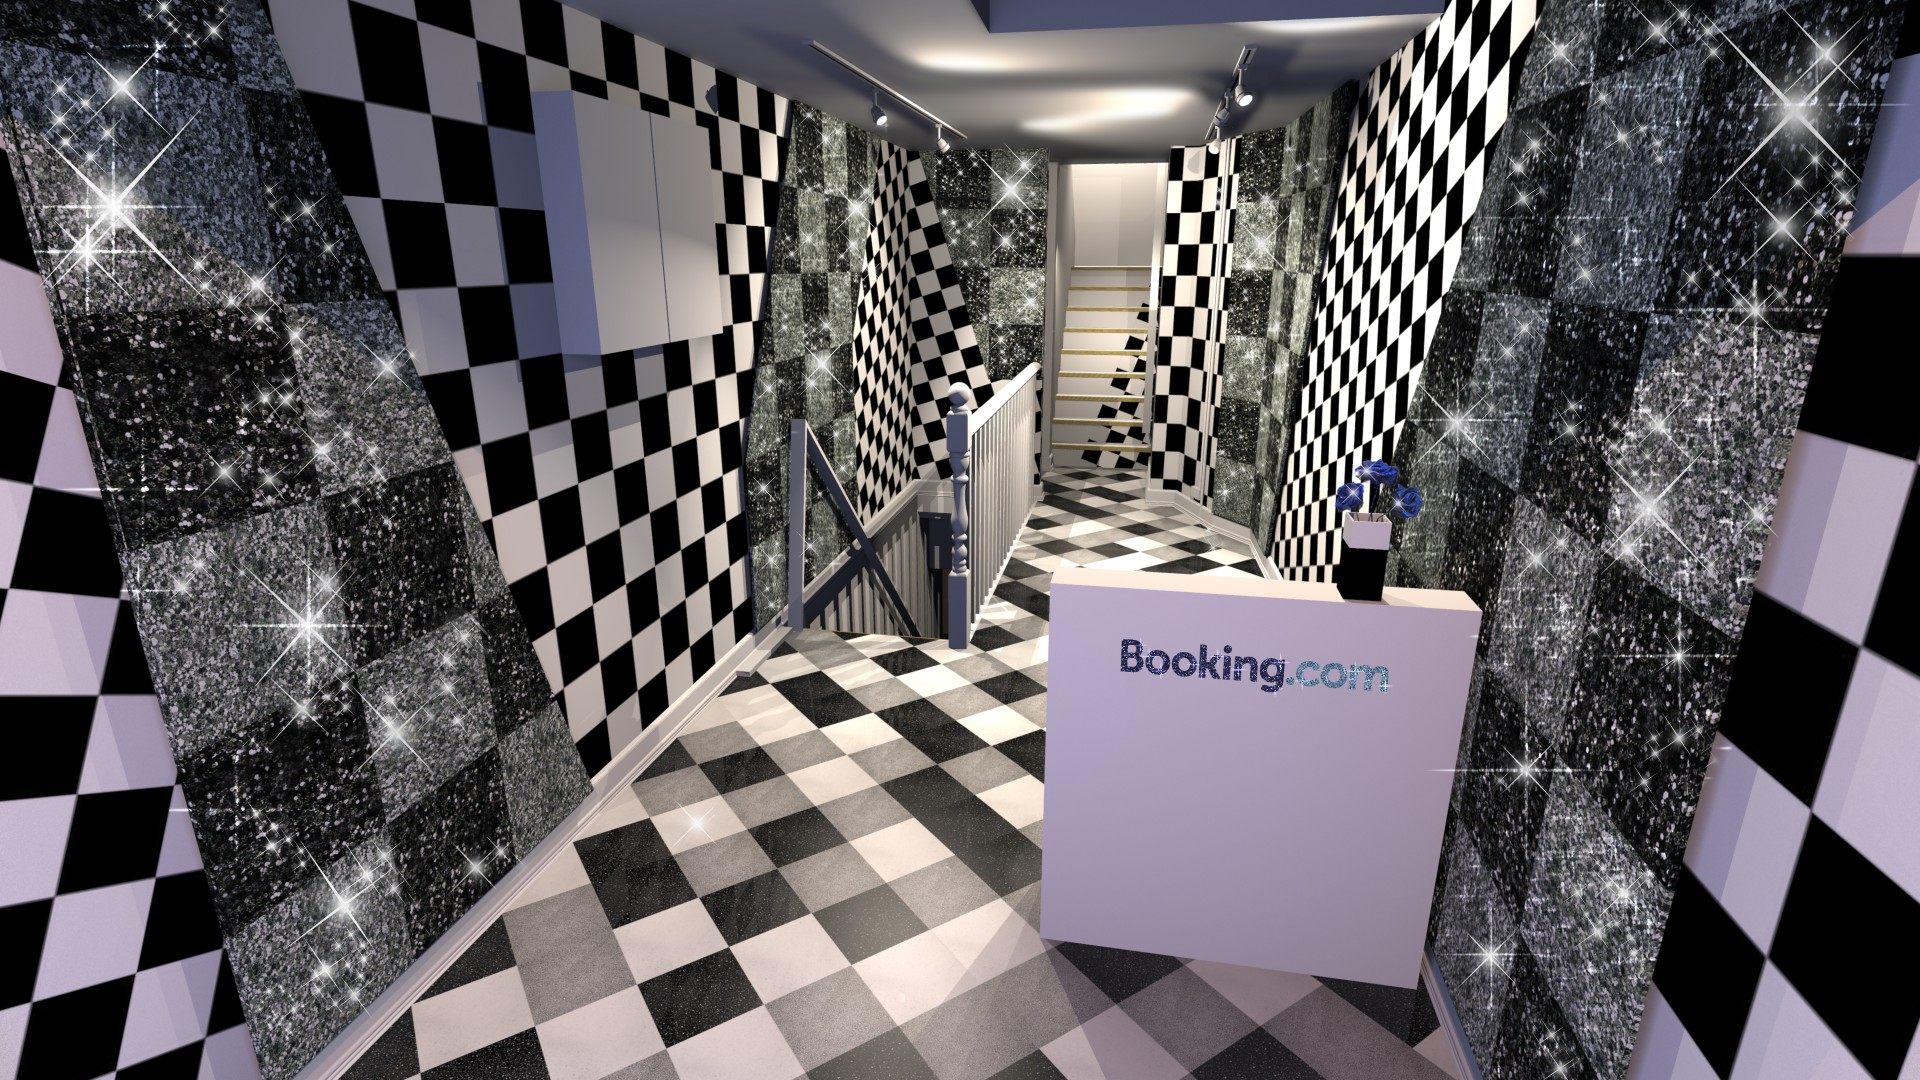 Booking.com House of Sparkle gound floor entrance render viusal